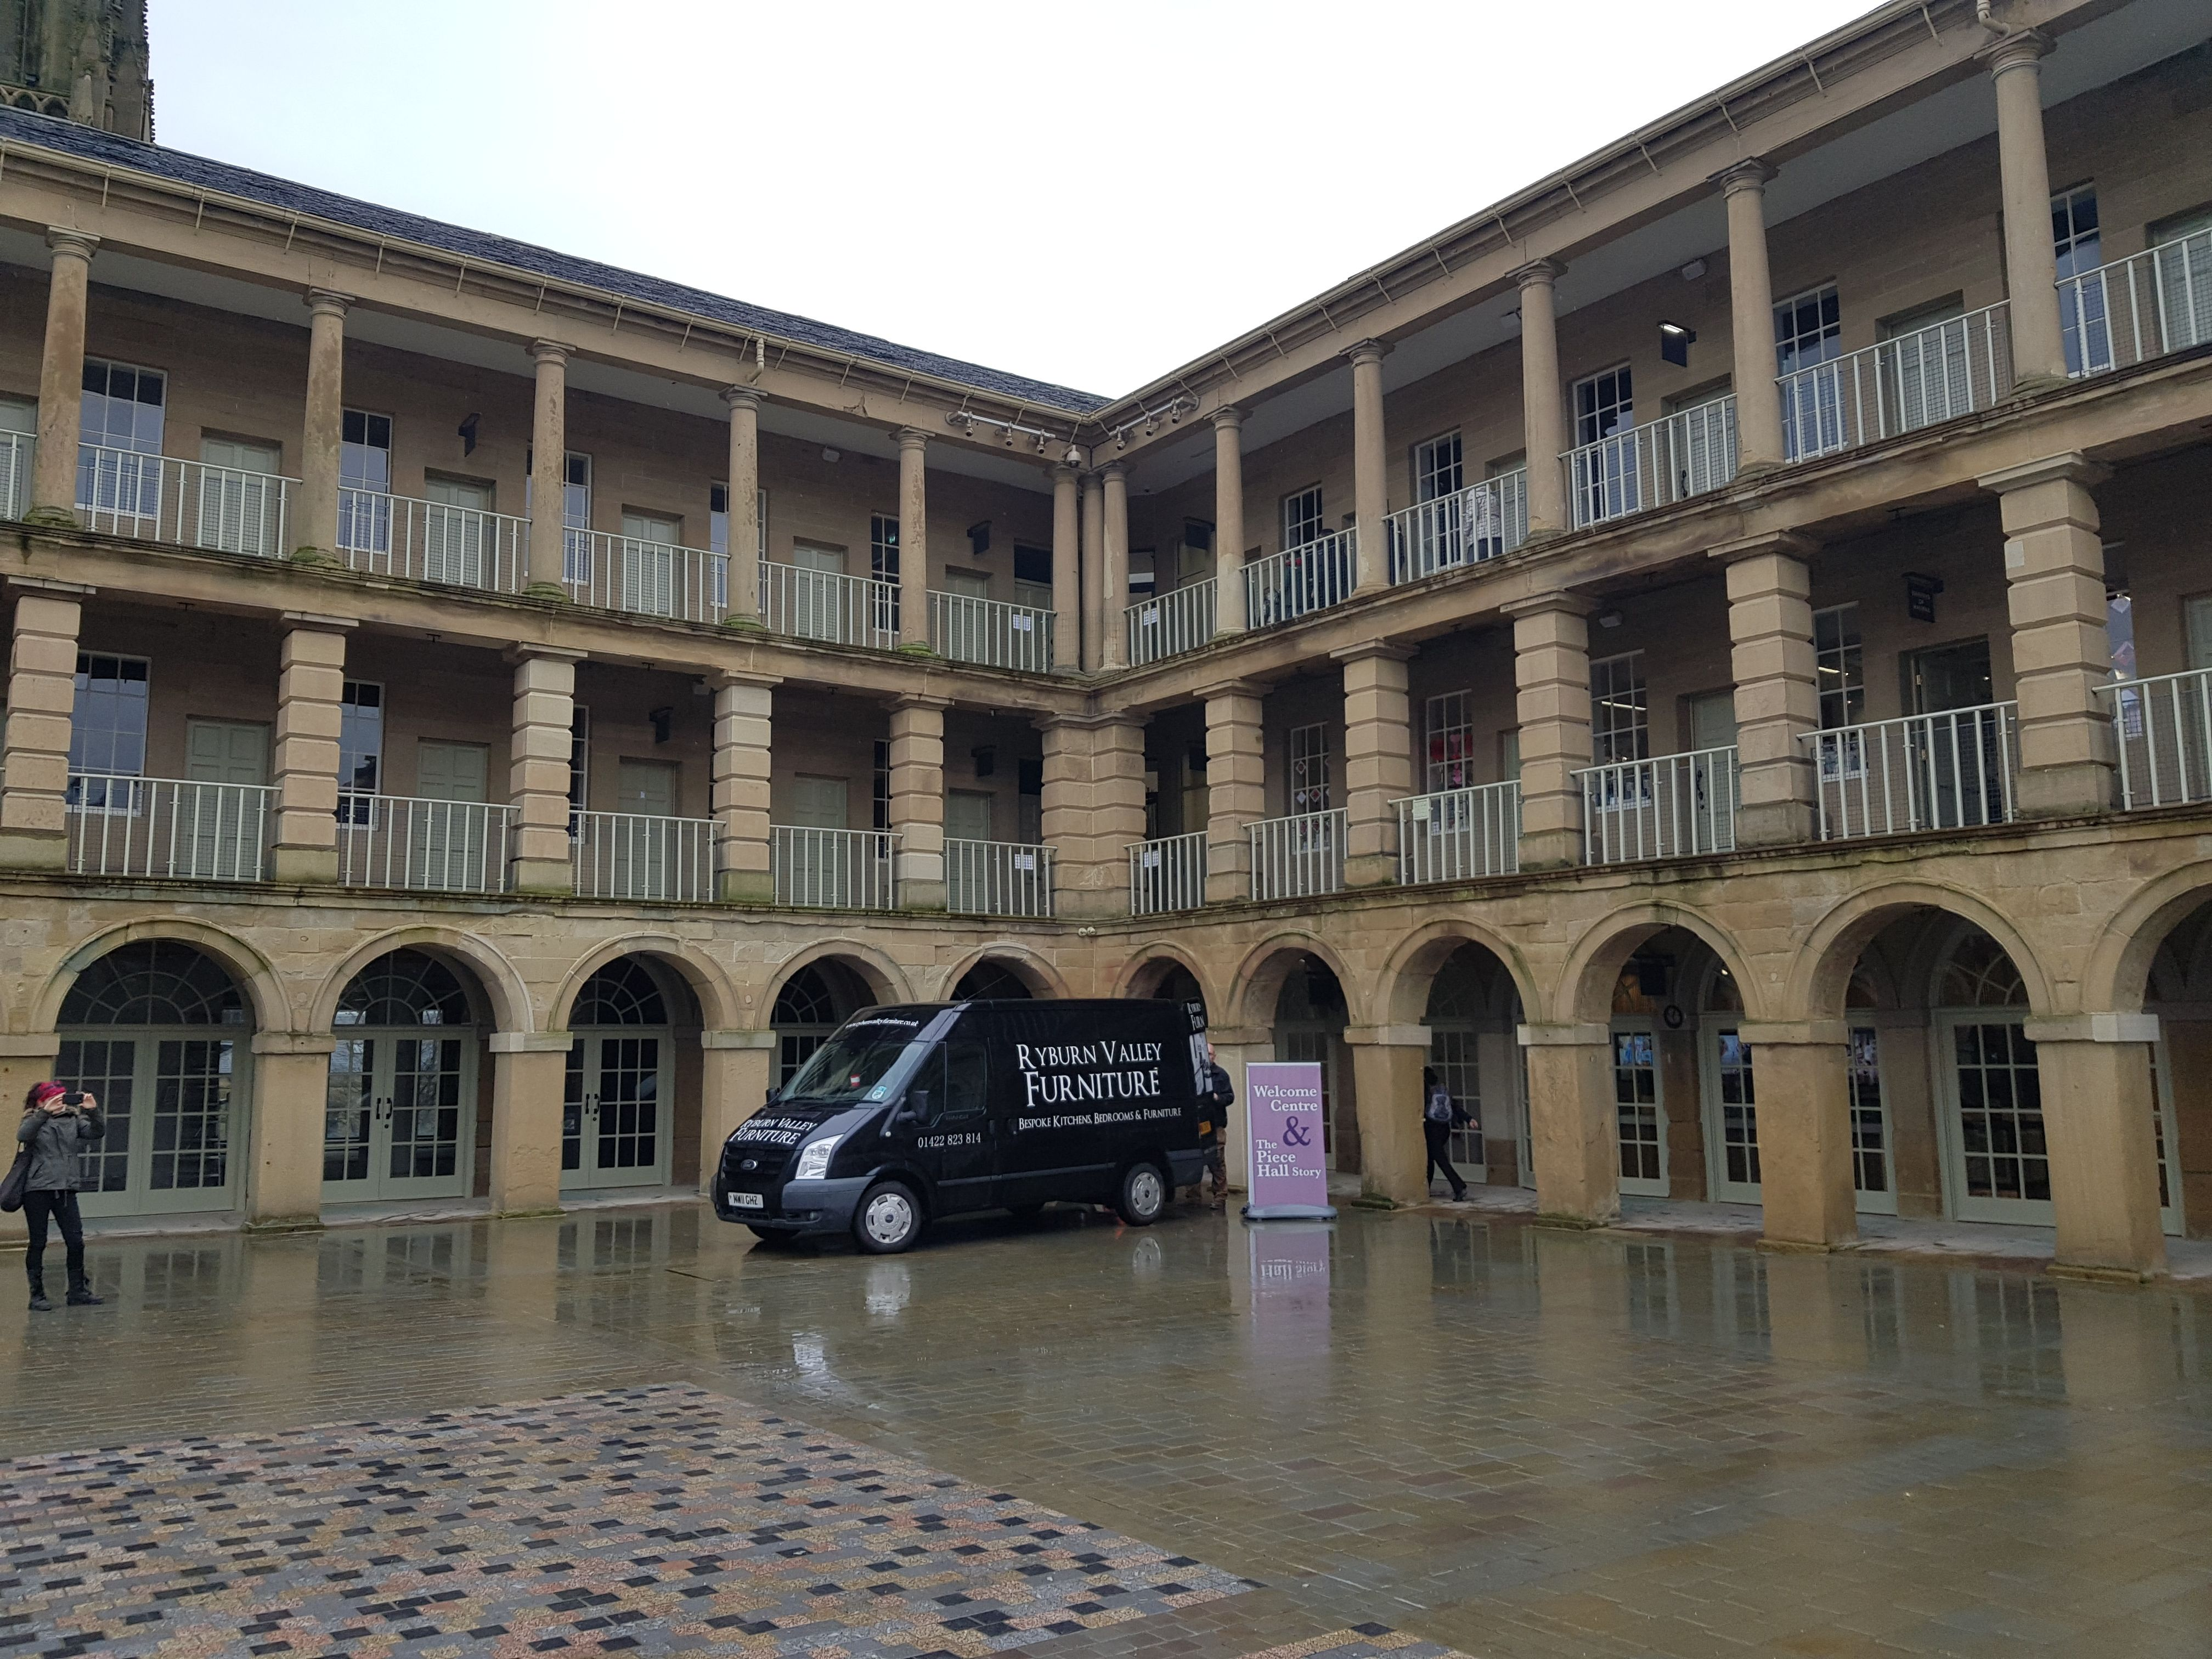 Ryburn valley furniture hitus the piece hall we are proud to